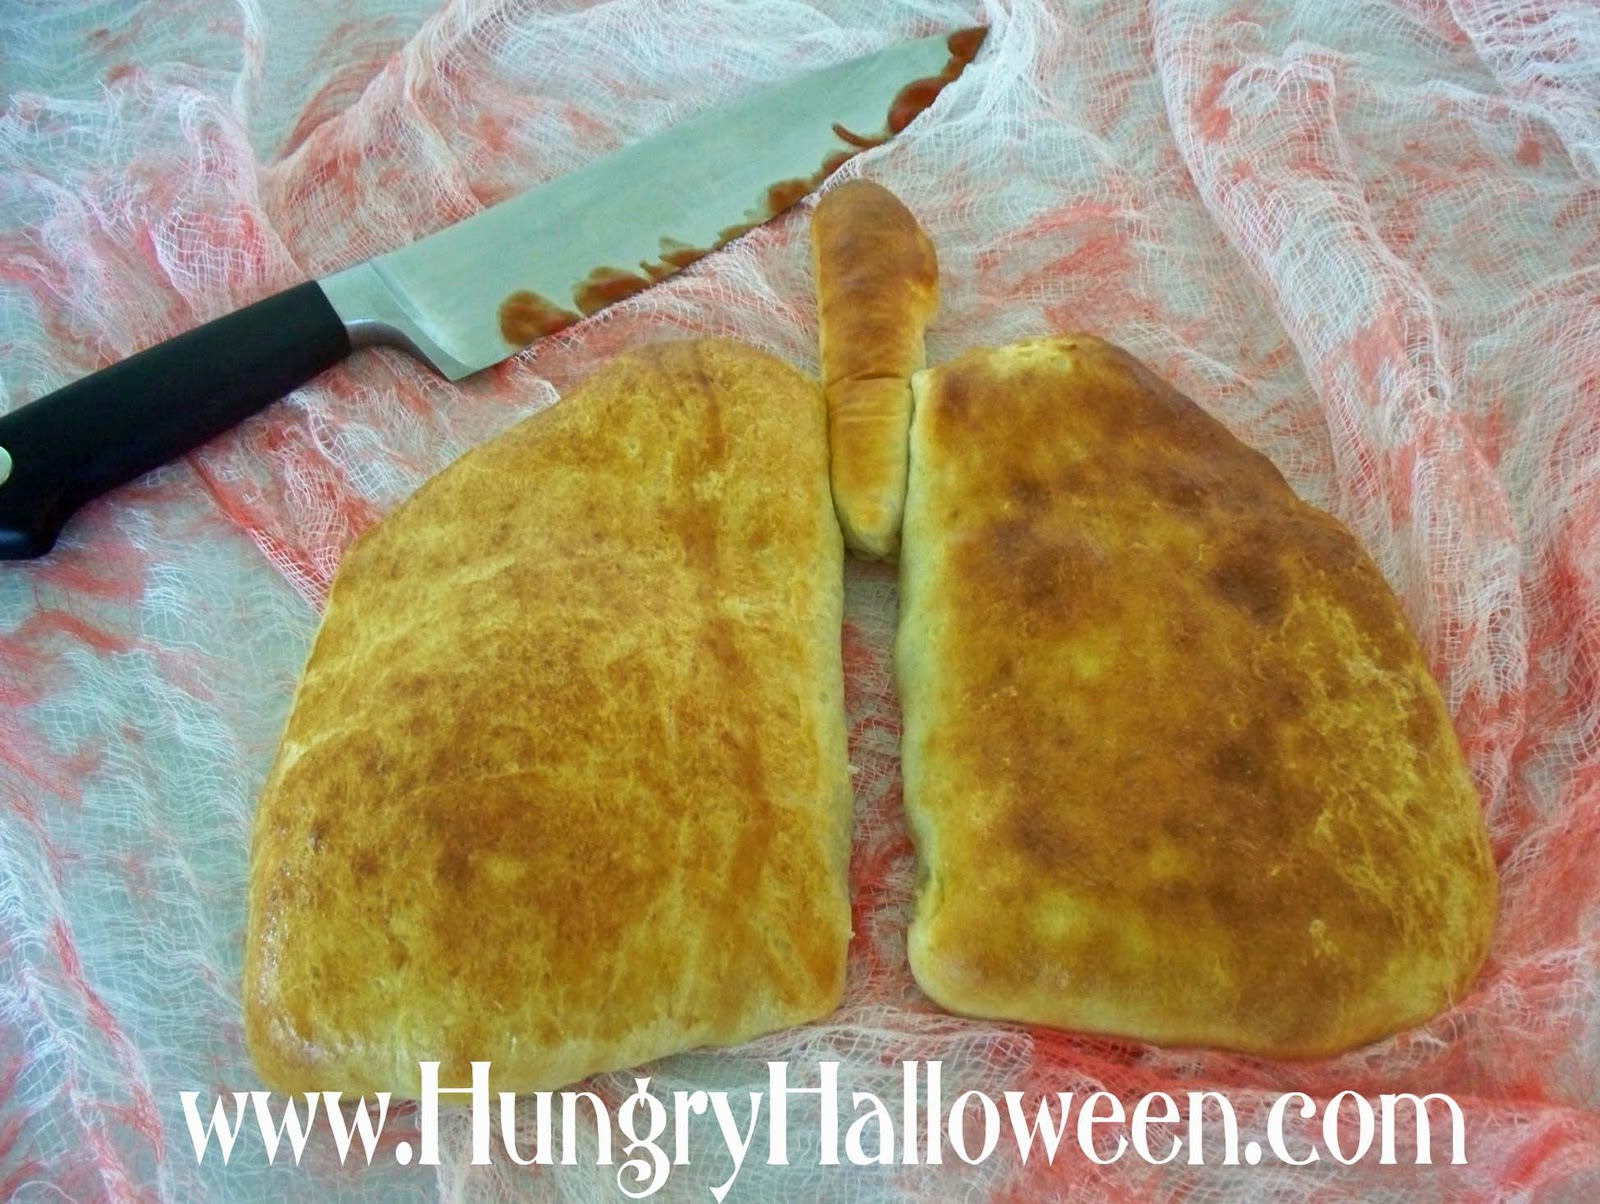 Halloween Recipe - Lung Calzones (Madeira Mushroom Filled Pastries ...